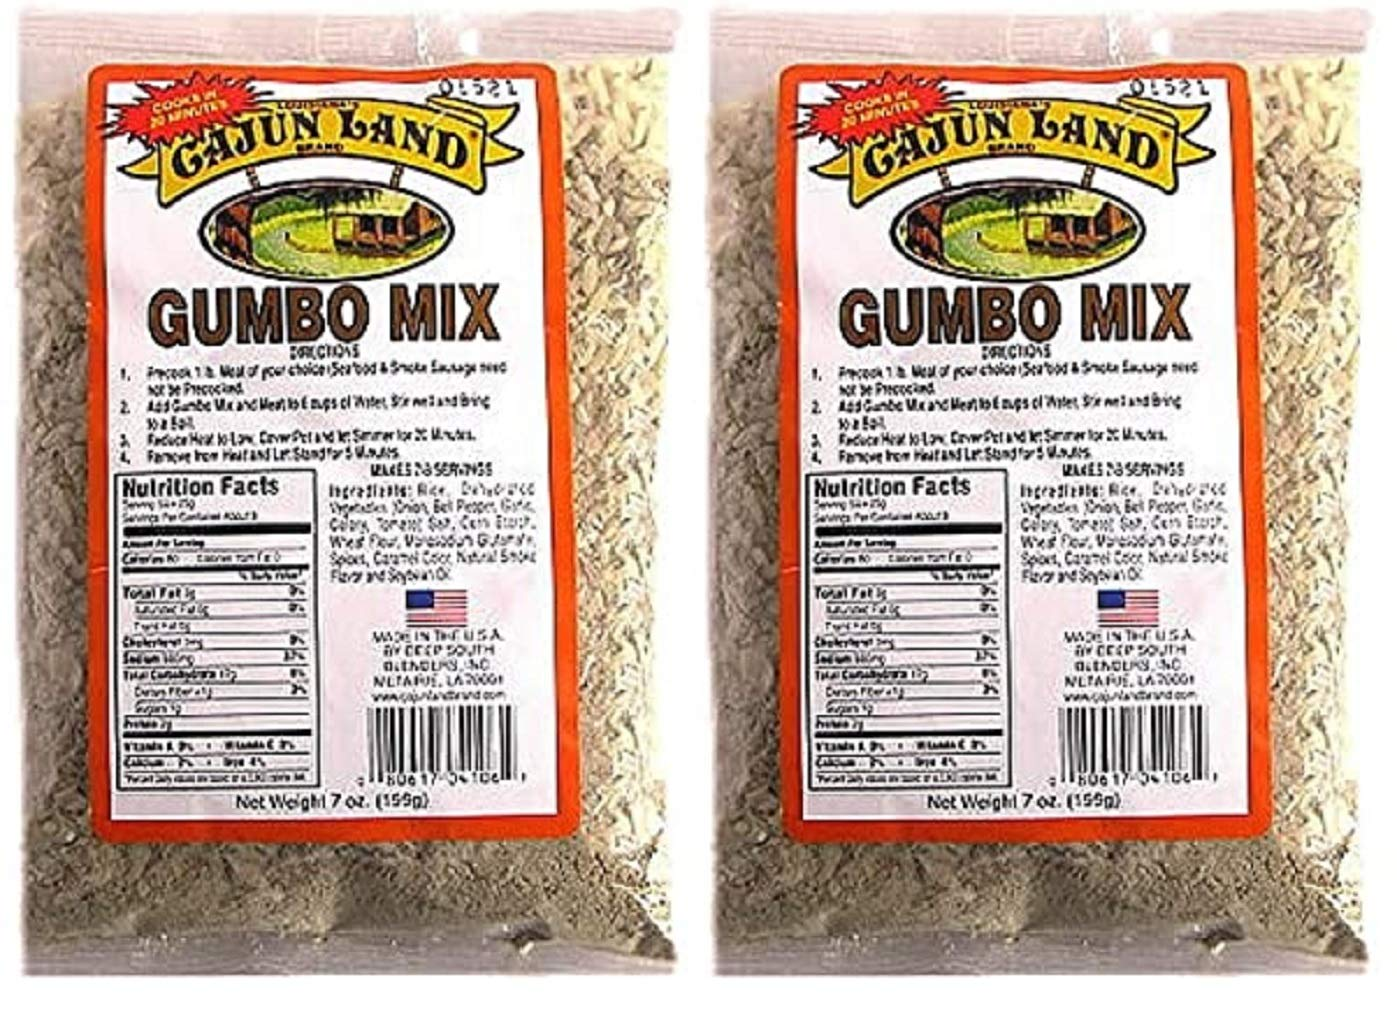 Max 68% OFF Cajun Land No Award-winning store MSG Gumbo Mix Two Ounce 7 Bags Pack of